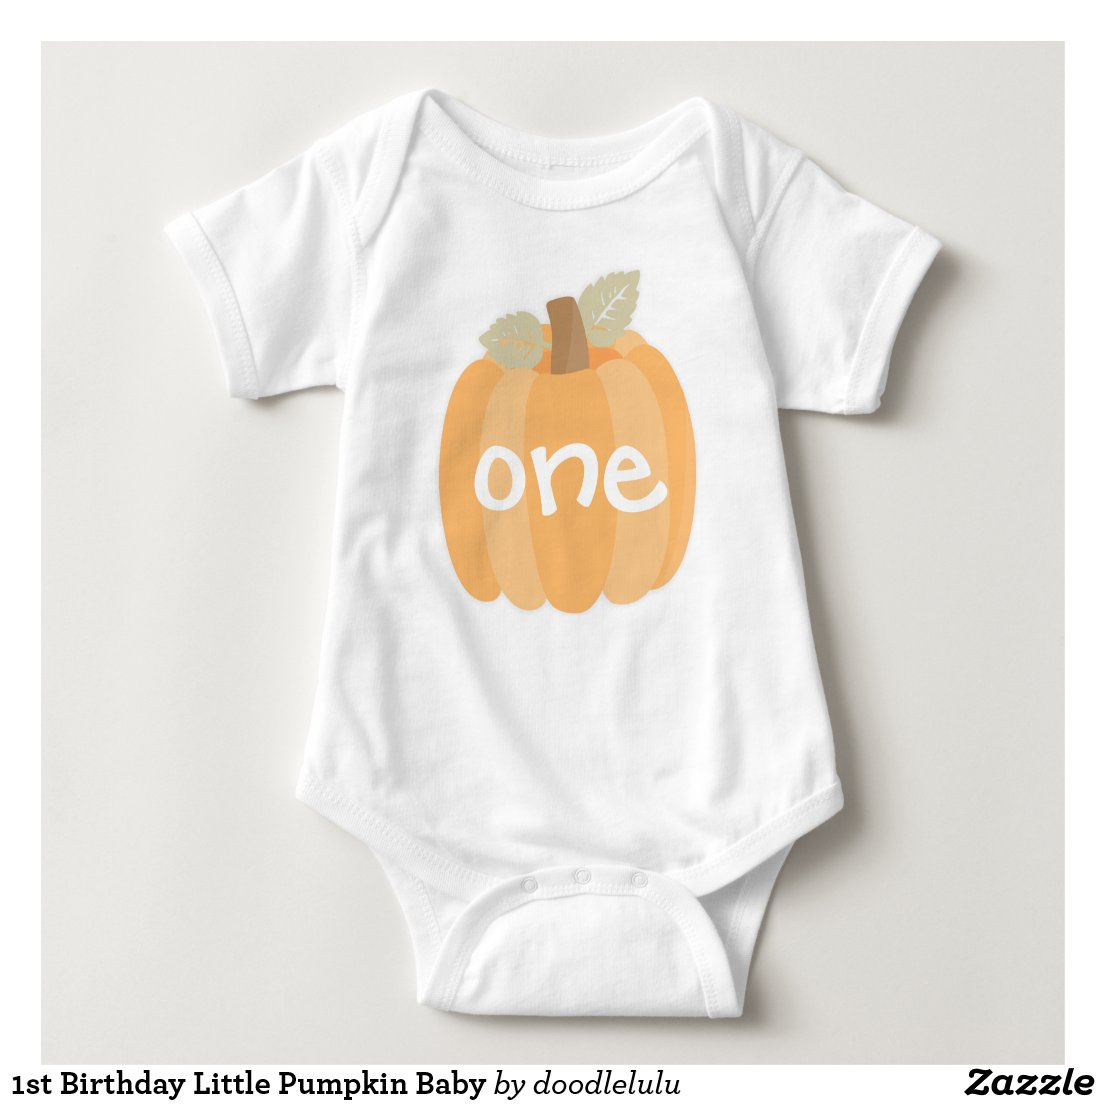 1st Birthday Little Pumpkin Baby Baby Bodysuit